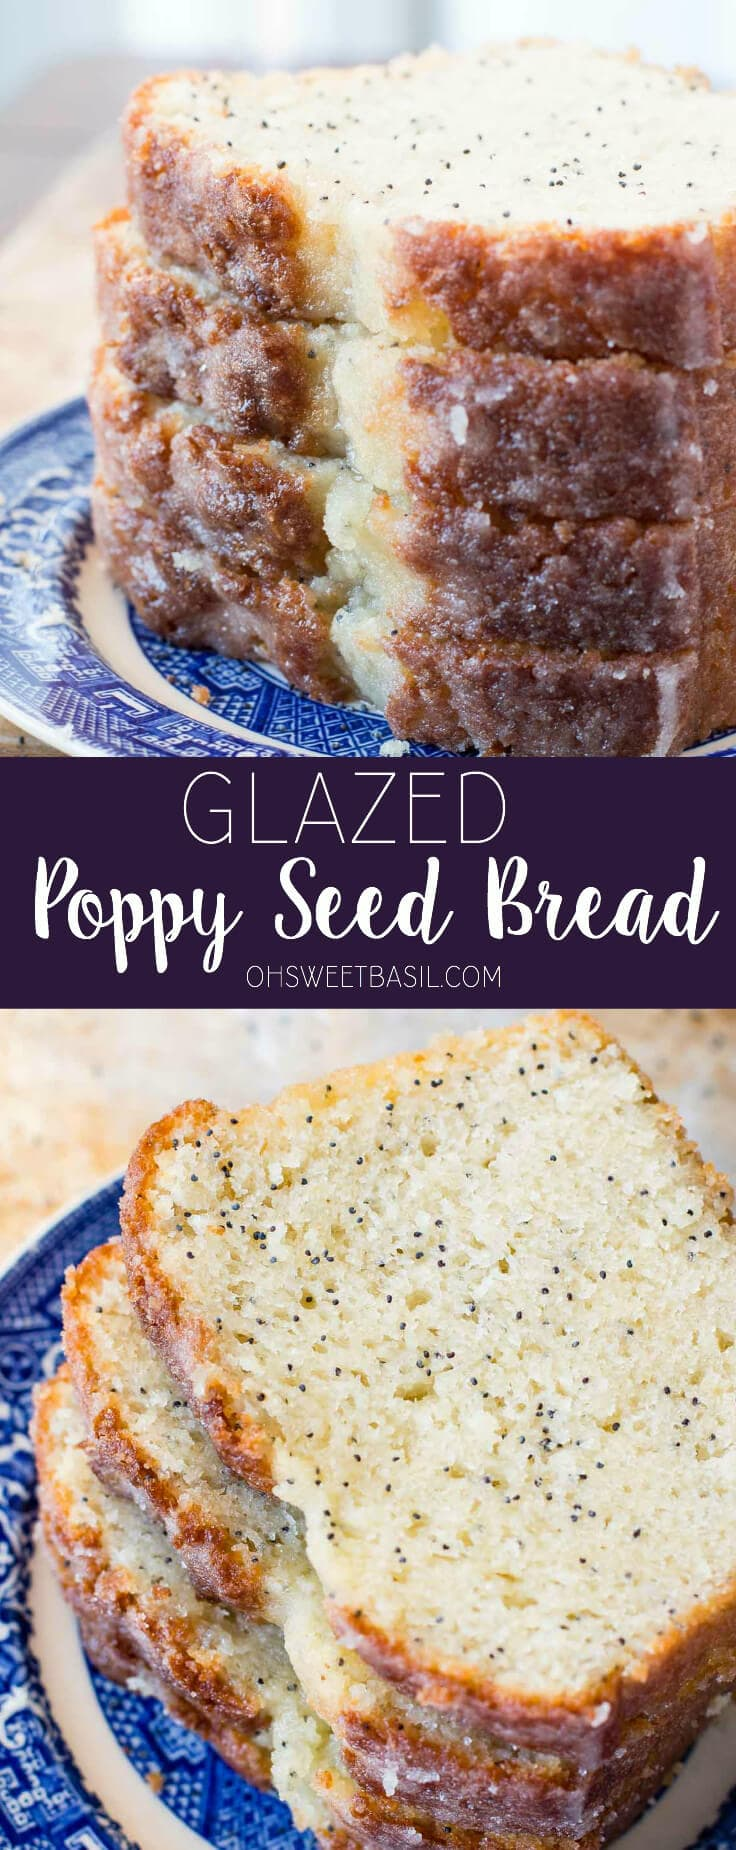 This glazed poppy seed bread is one of the easiest quick bread recipes. It's light and fluffy and full of flavor with that delicious glaze!